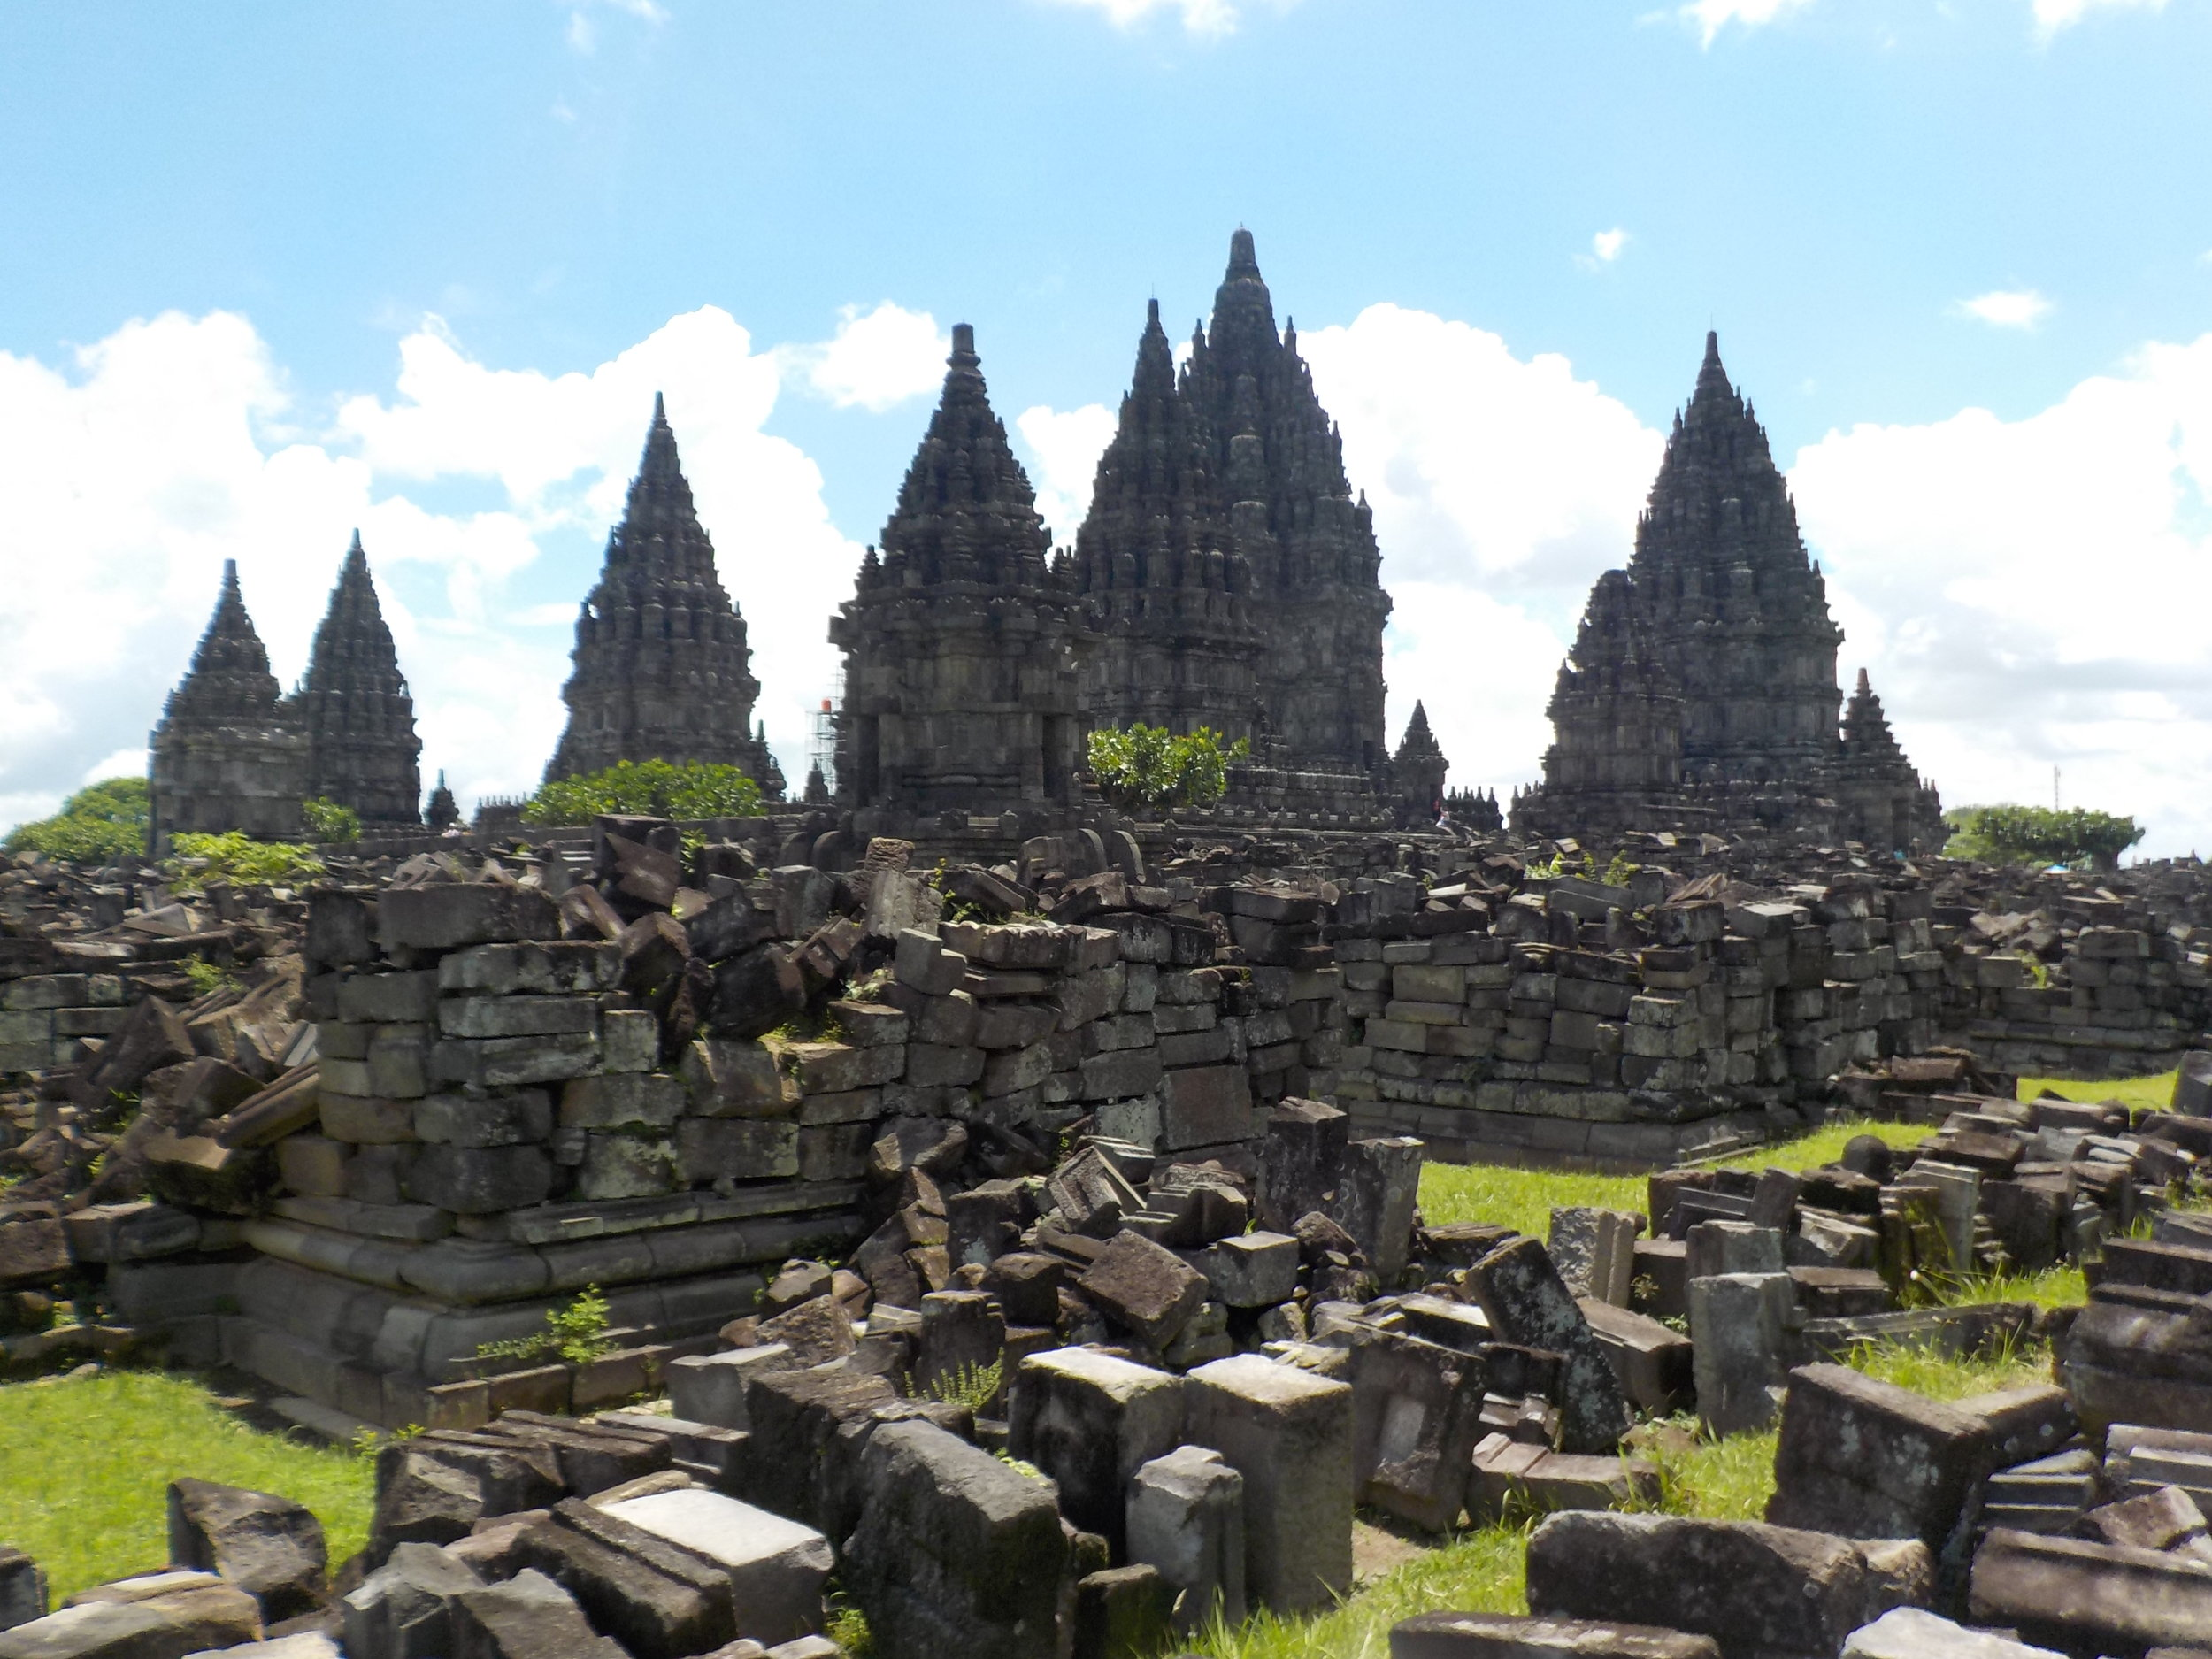 Hundreds of years of volcanic activity, looting, and an earthquake in 2006 caused significant damage to Prambanan